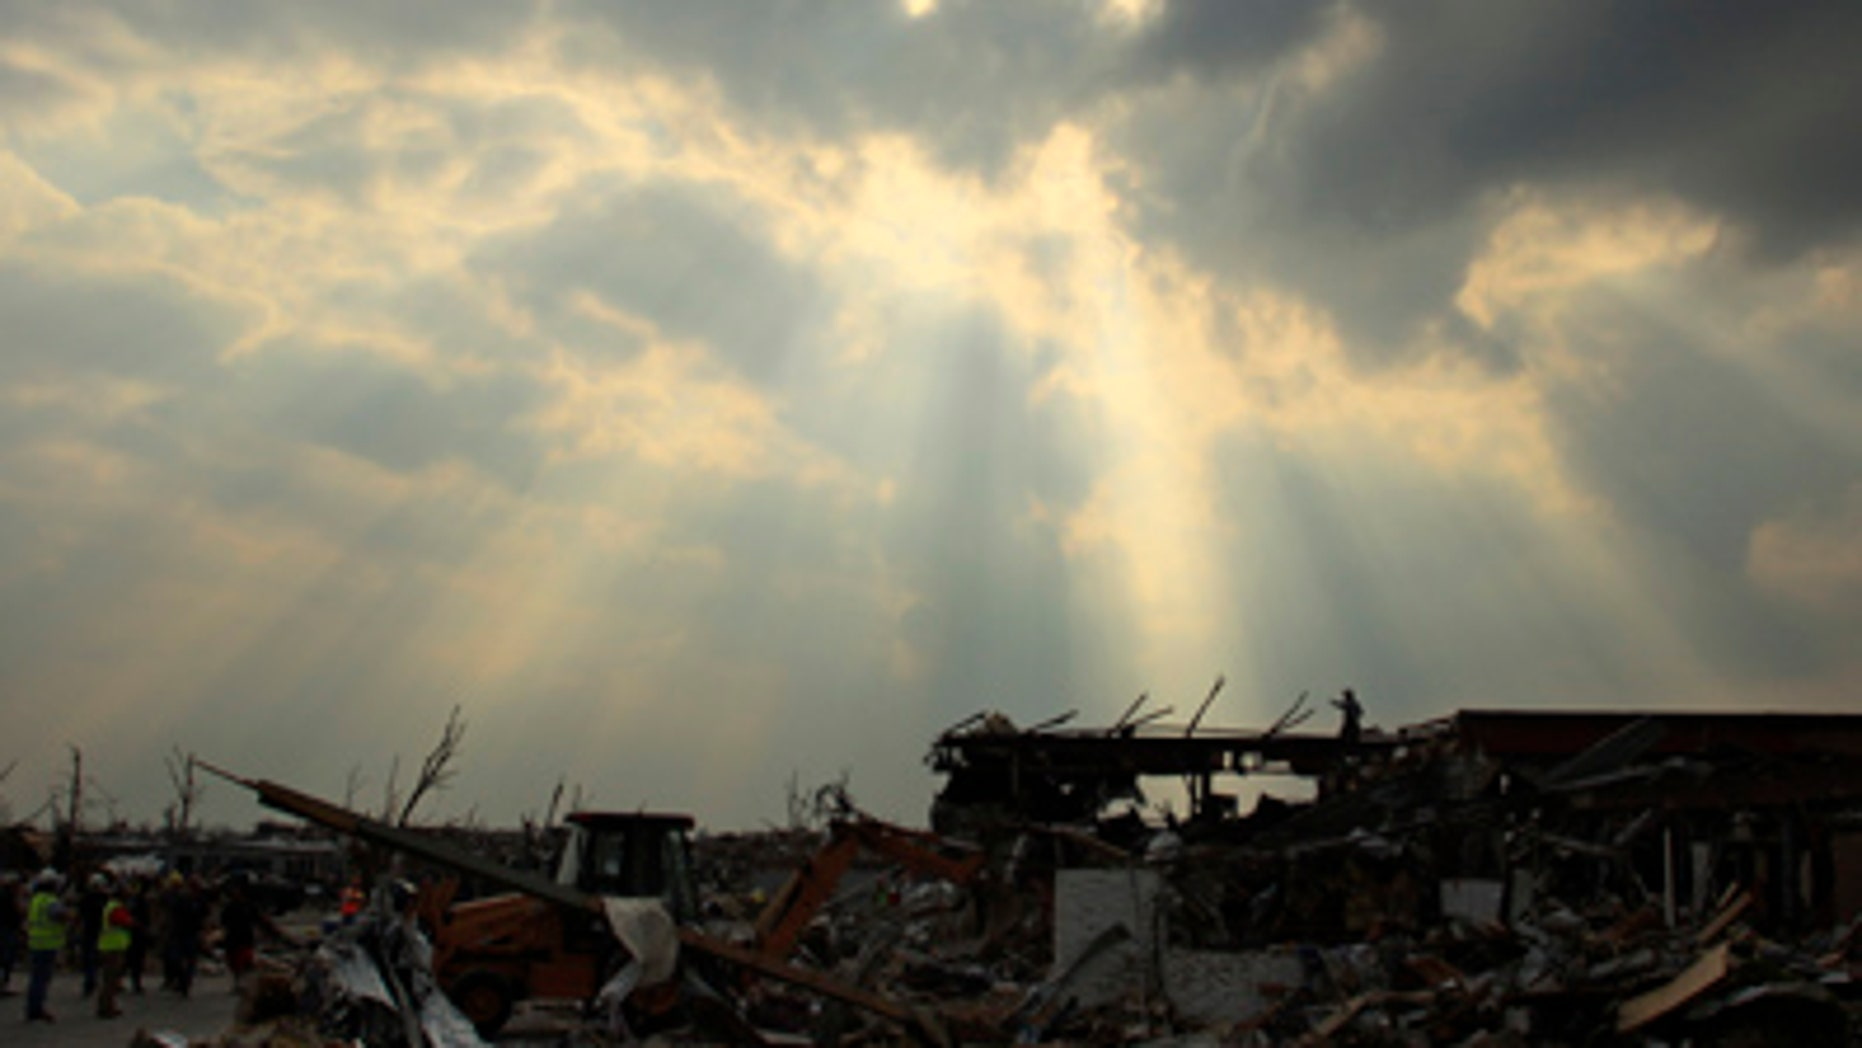 May 28: A search and rescue team surveys the area from atop the rubble of a destroyed building in Joplin, Mo. An EF-5 tornado tore through much of the city Sunday, damaging a hospital and hundreds of homes and businesses and killing at least 139 people. (AP)